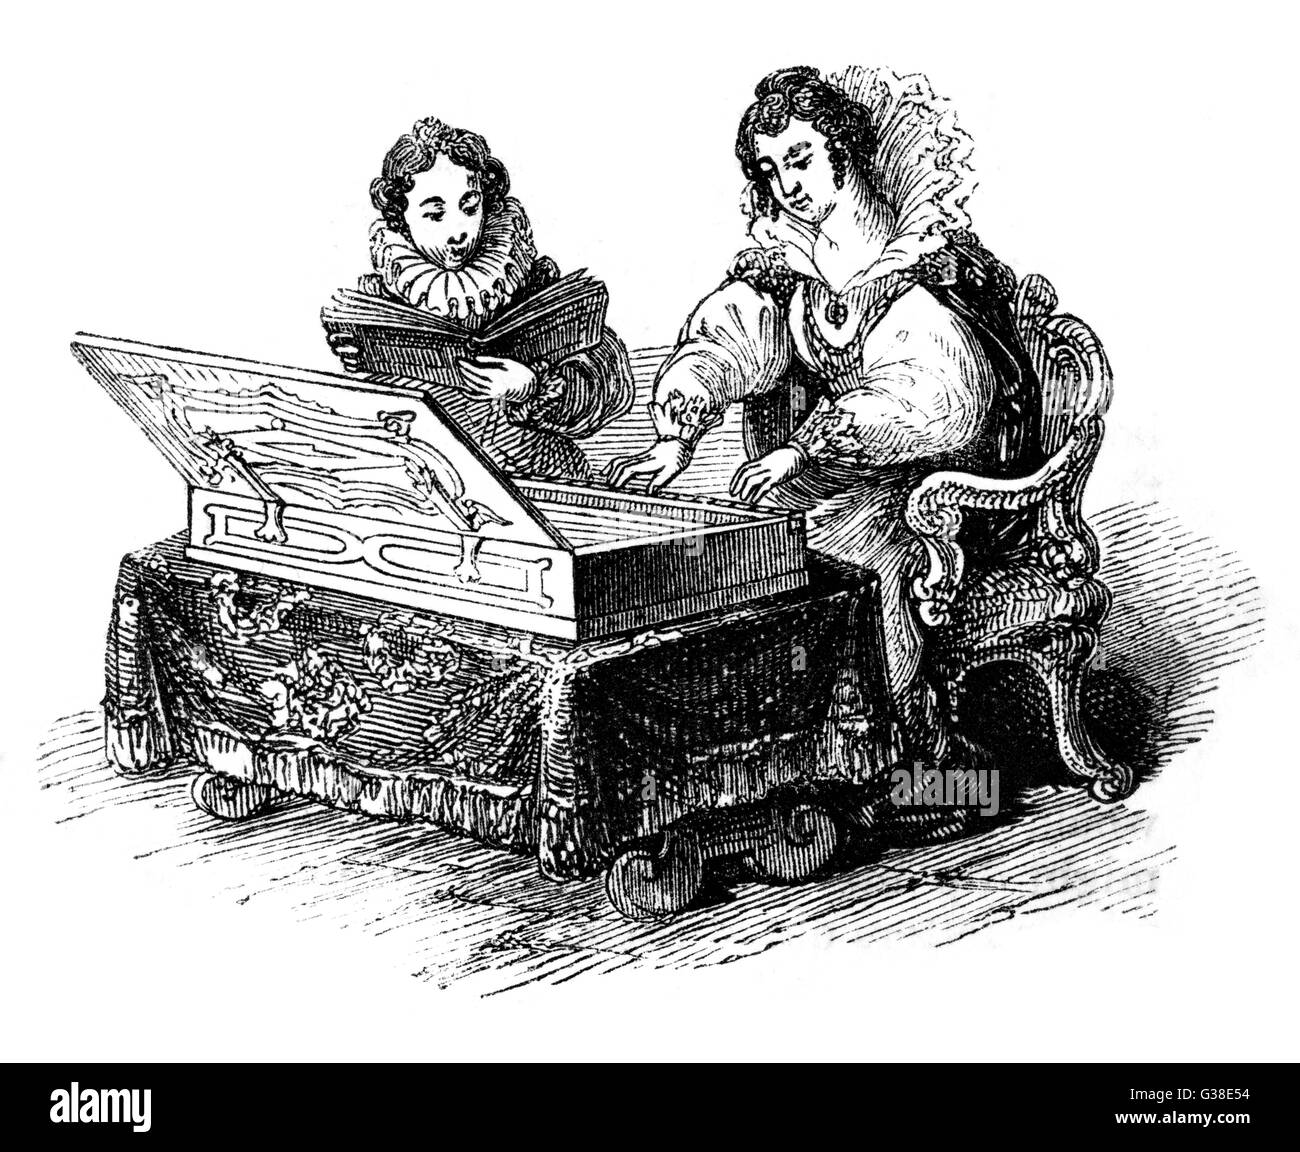 A virginal being played          Date: 16th/17th century - Stock Image